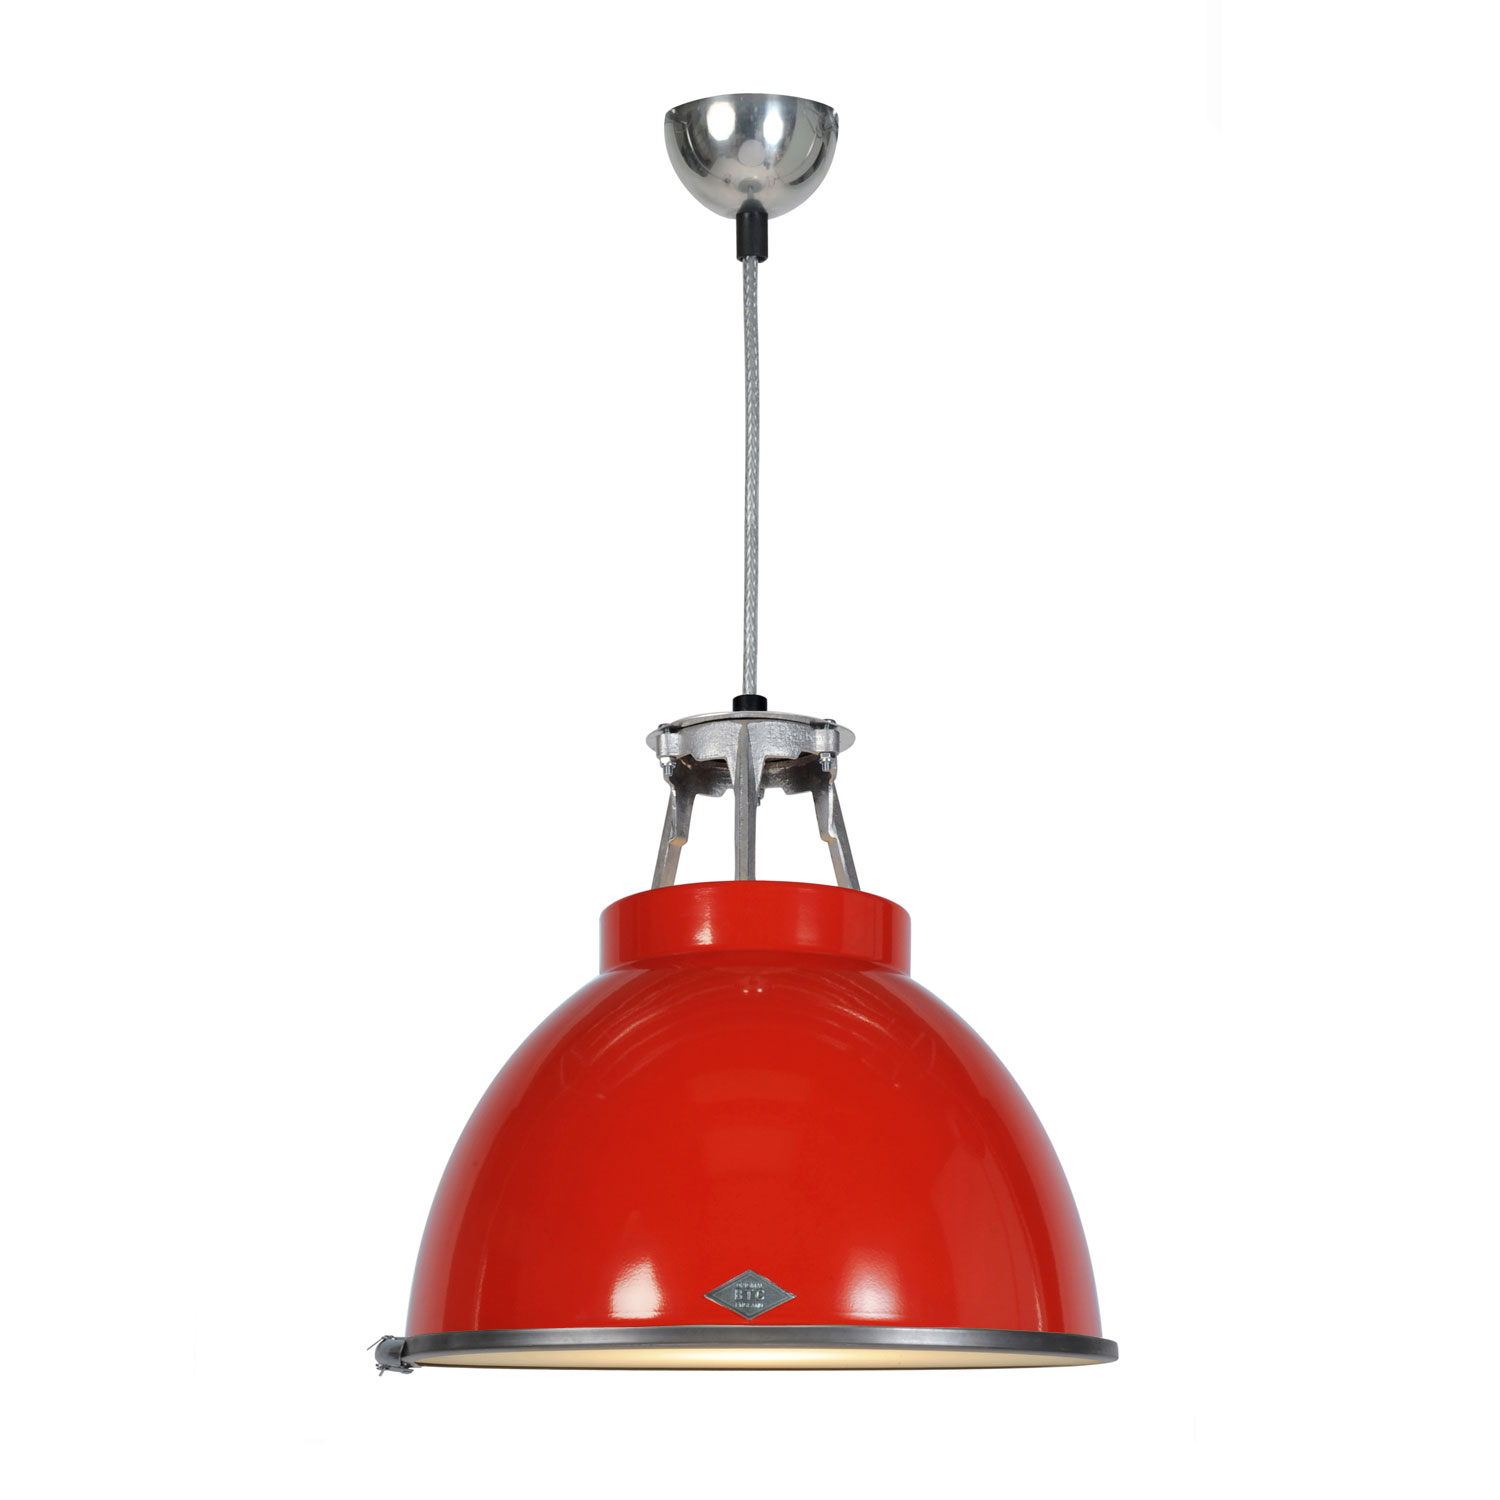 Titan Size 1 Pendant Light, Red with Etched Glass